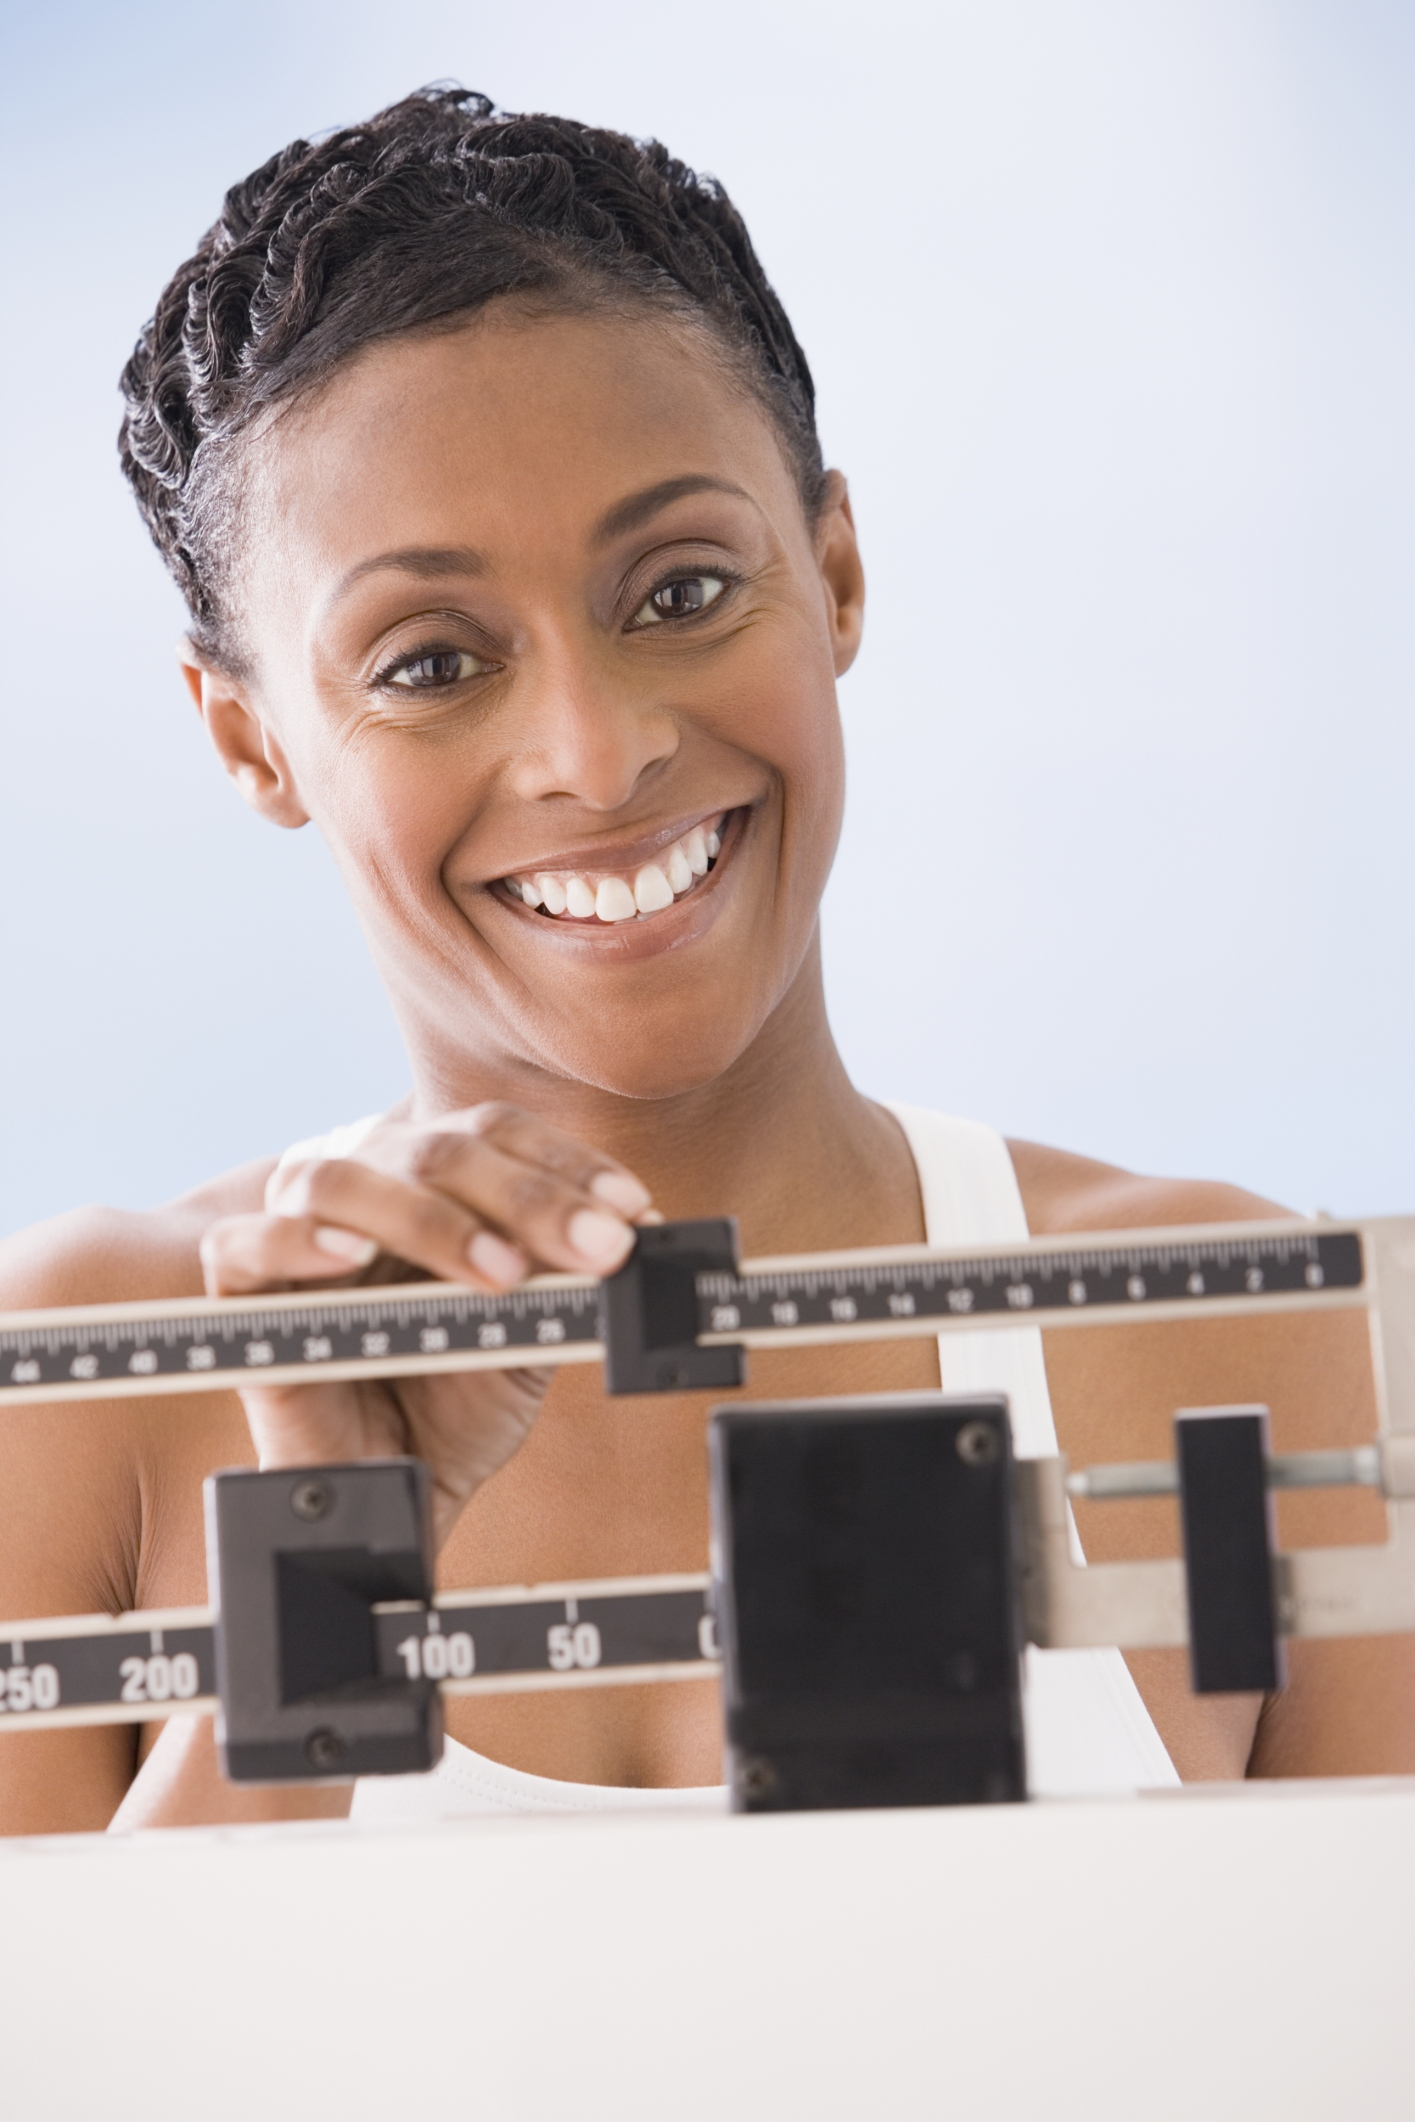 How to amp up weight loss on weight watchers